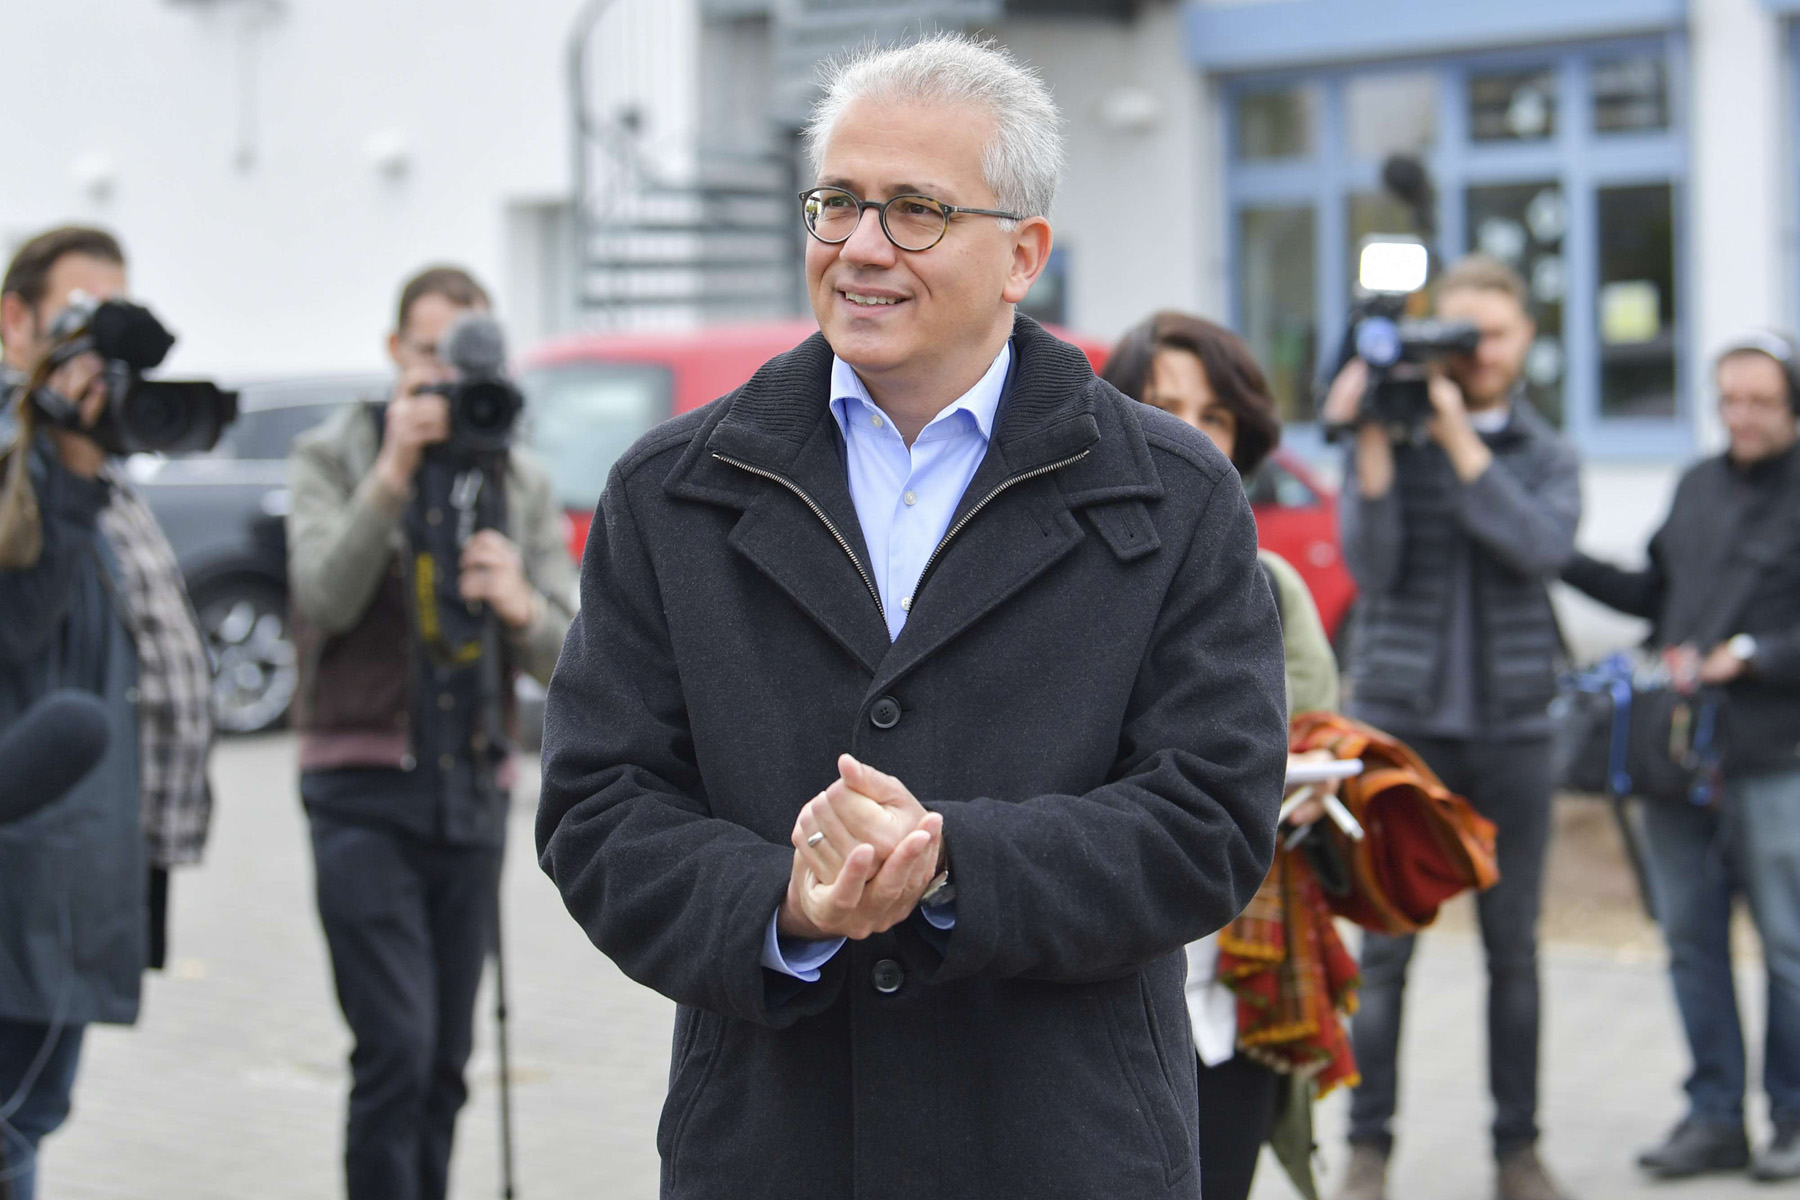 A man on a mission. Tarek al-Wazir leaves the polling station after he cast his vote for the Hesse state election in Offenbach, on October 28.          (AP)